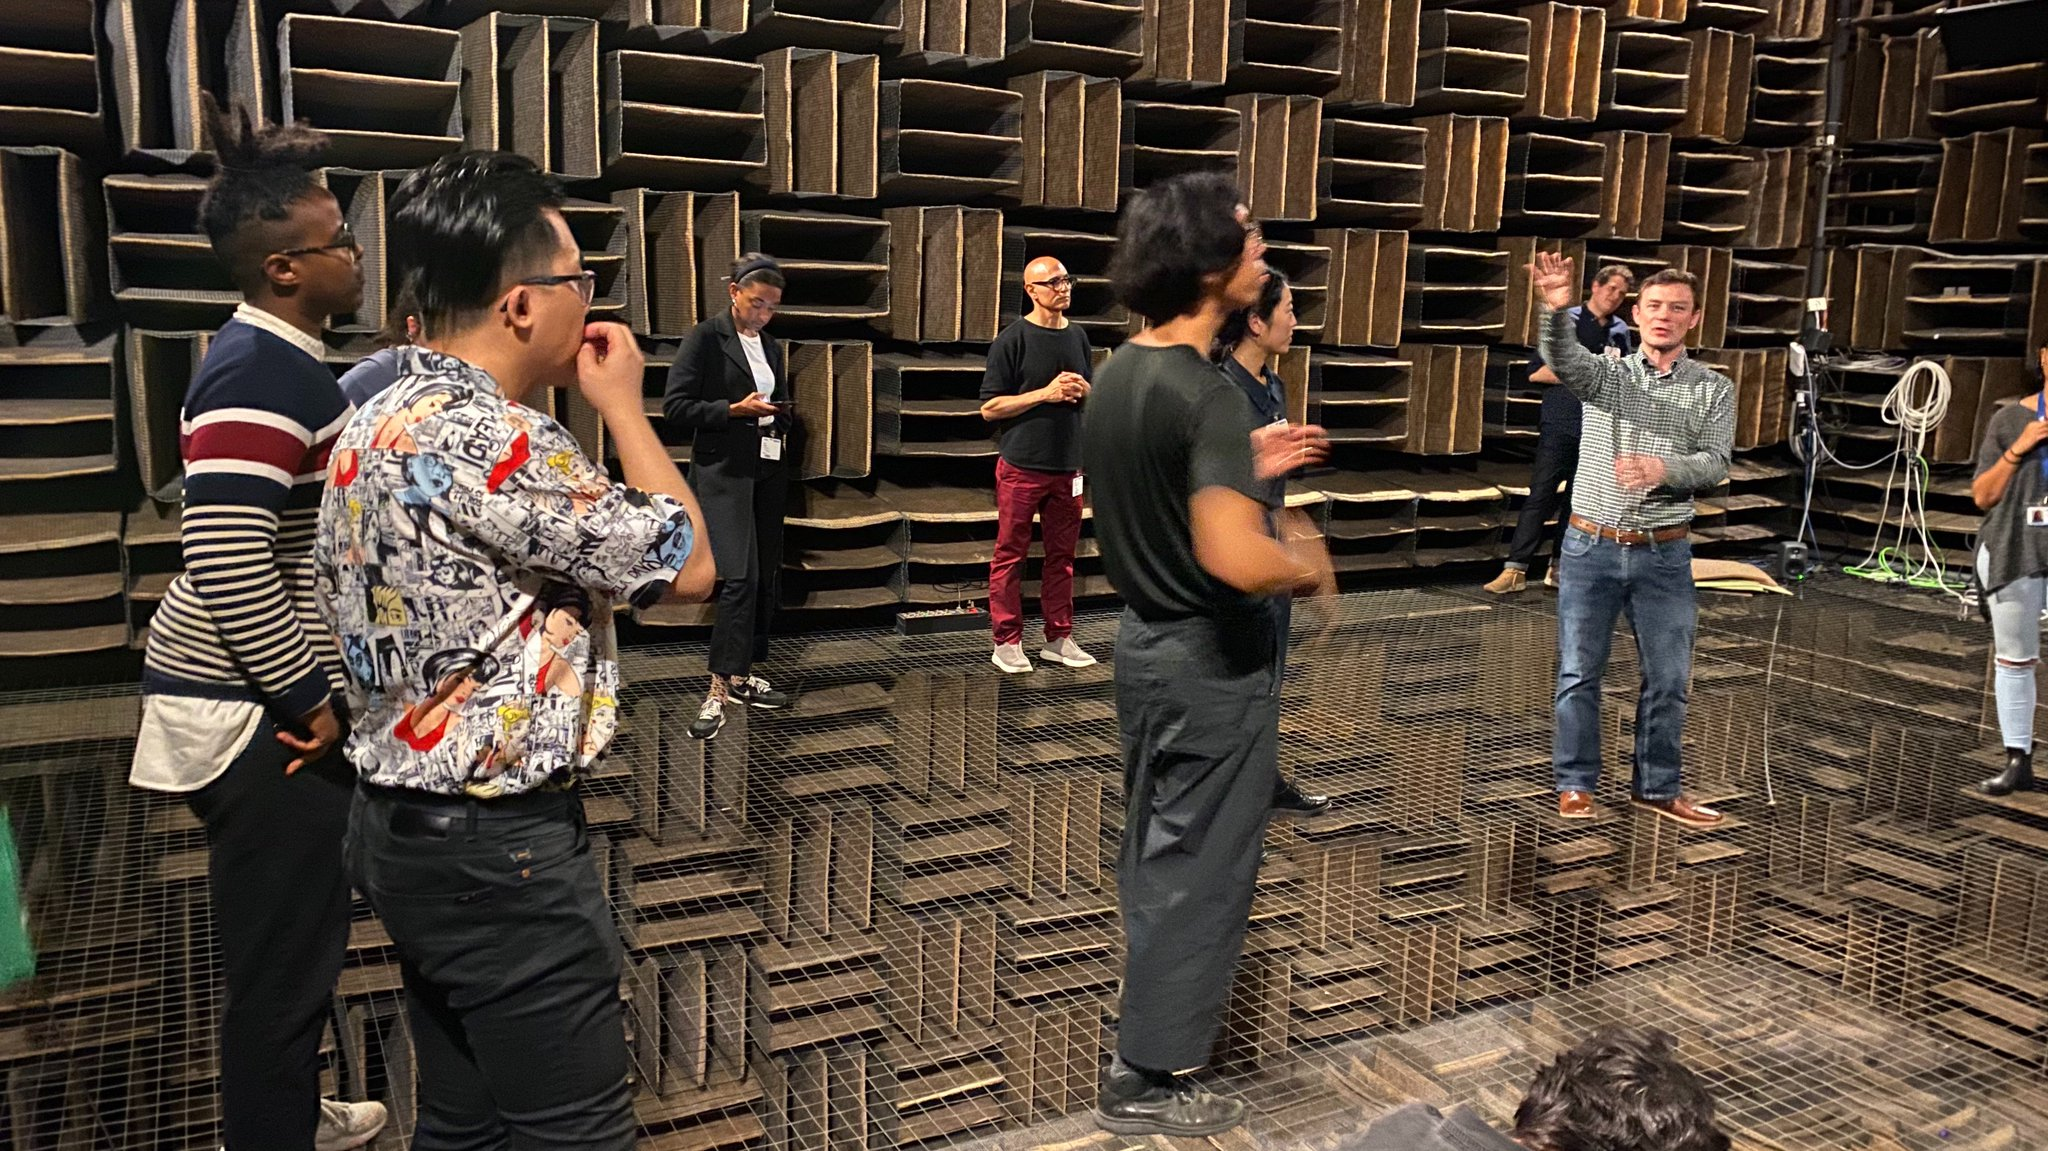 Nokia Bell Labs' anechoic chamber once held the Guinness Record for the quietest place on Earth? ⠀⠀⠀⠀⠀⠀⠀⠀⠀⠀⠀⠀ Thanks to @DHernonBellLabs who hosted members of our Experiments in Art and Technology track on yesterday's @BellLabs field trip!